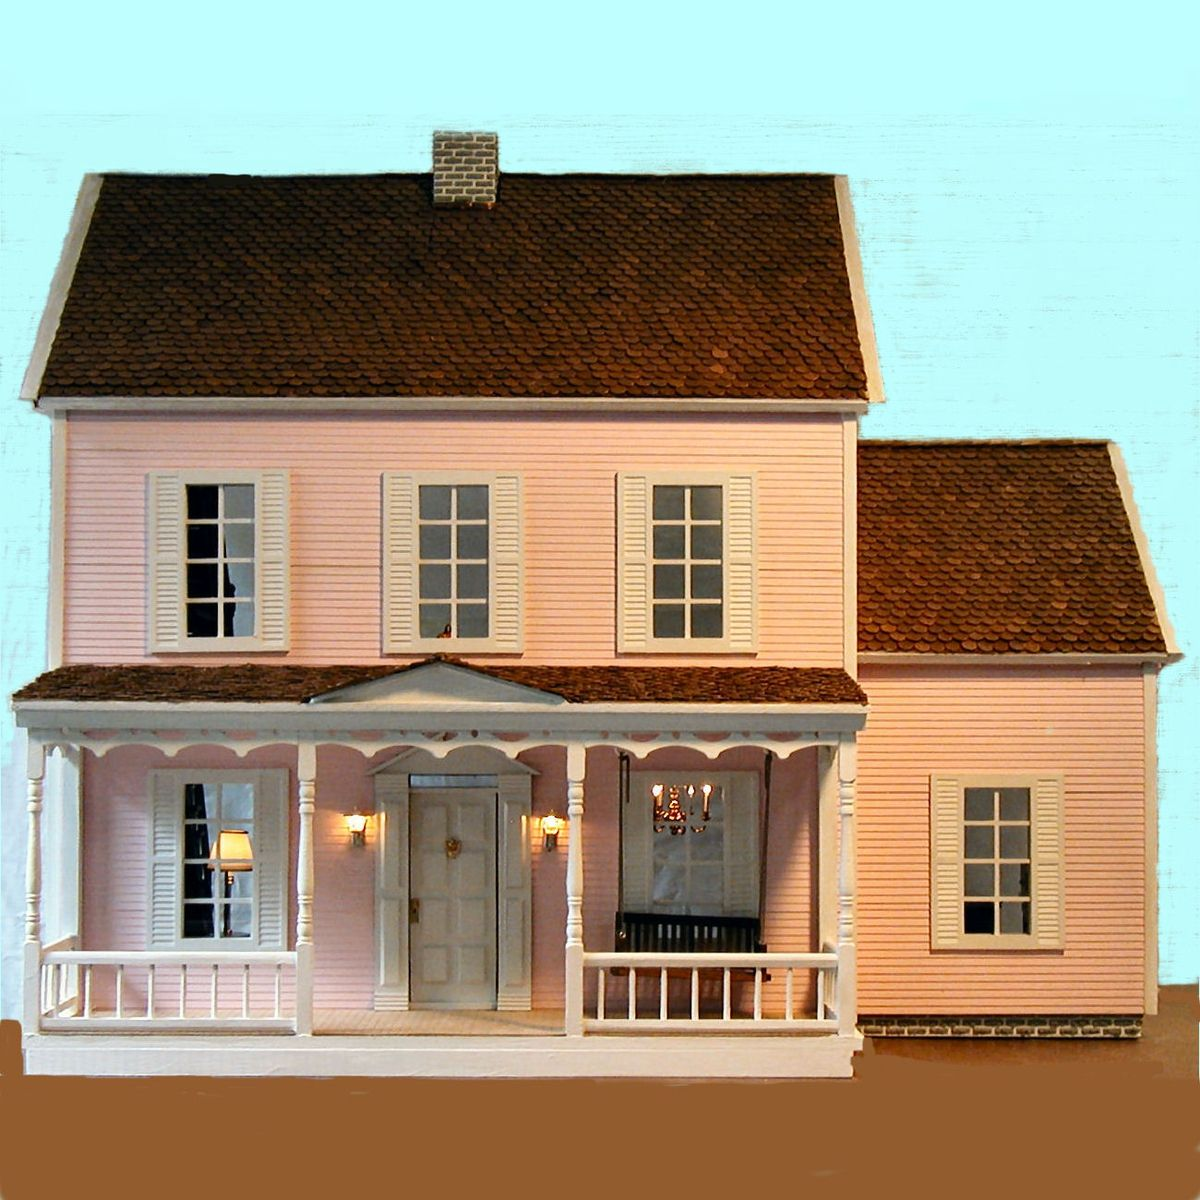 Custom Made Dollhouse By Rtw Woodcraft Custommade Com